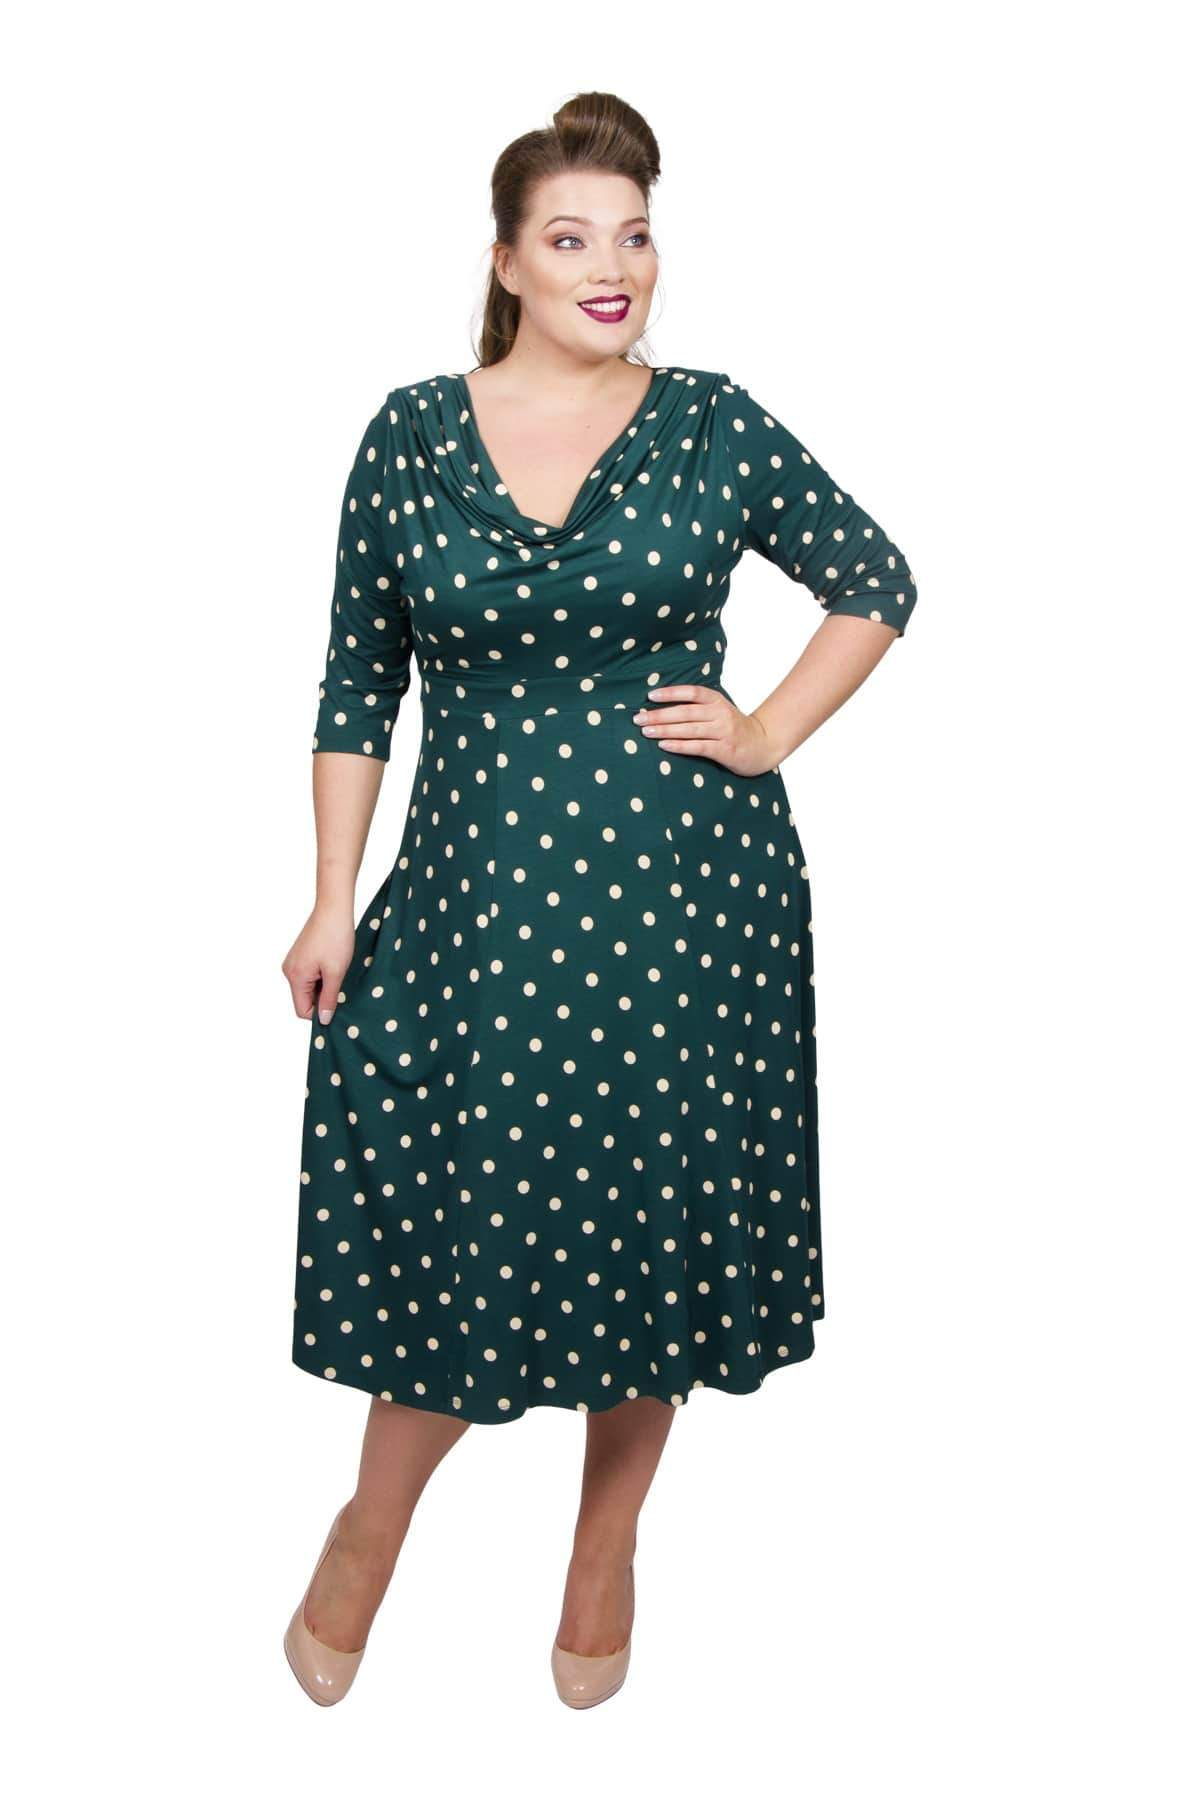 1940s Fashion Advice for Tall Women Lollidot Cowl Neck 40s Dress - GreenWhite  12 £60.00 AT vintagedancer.com